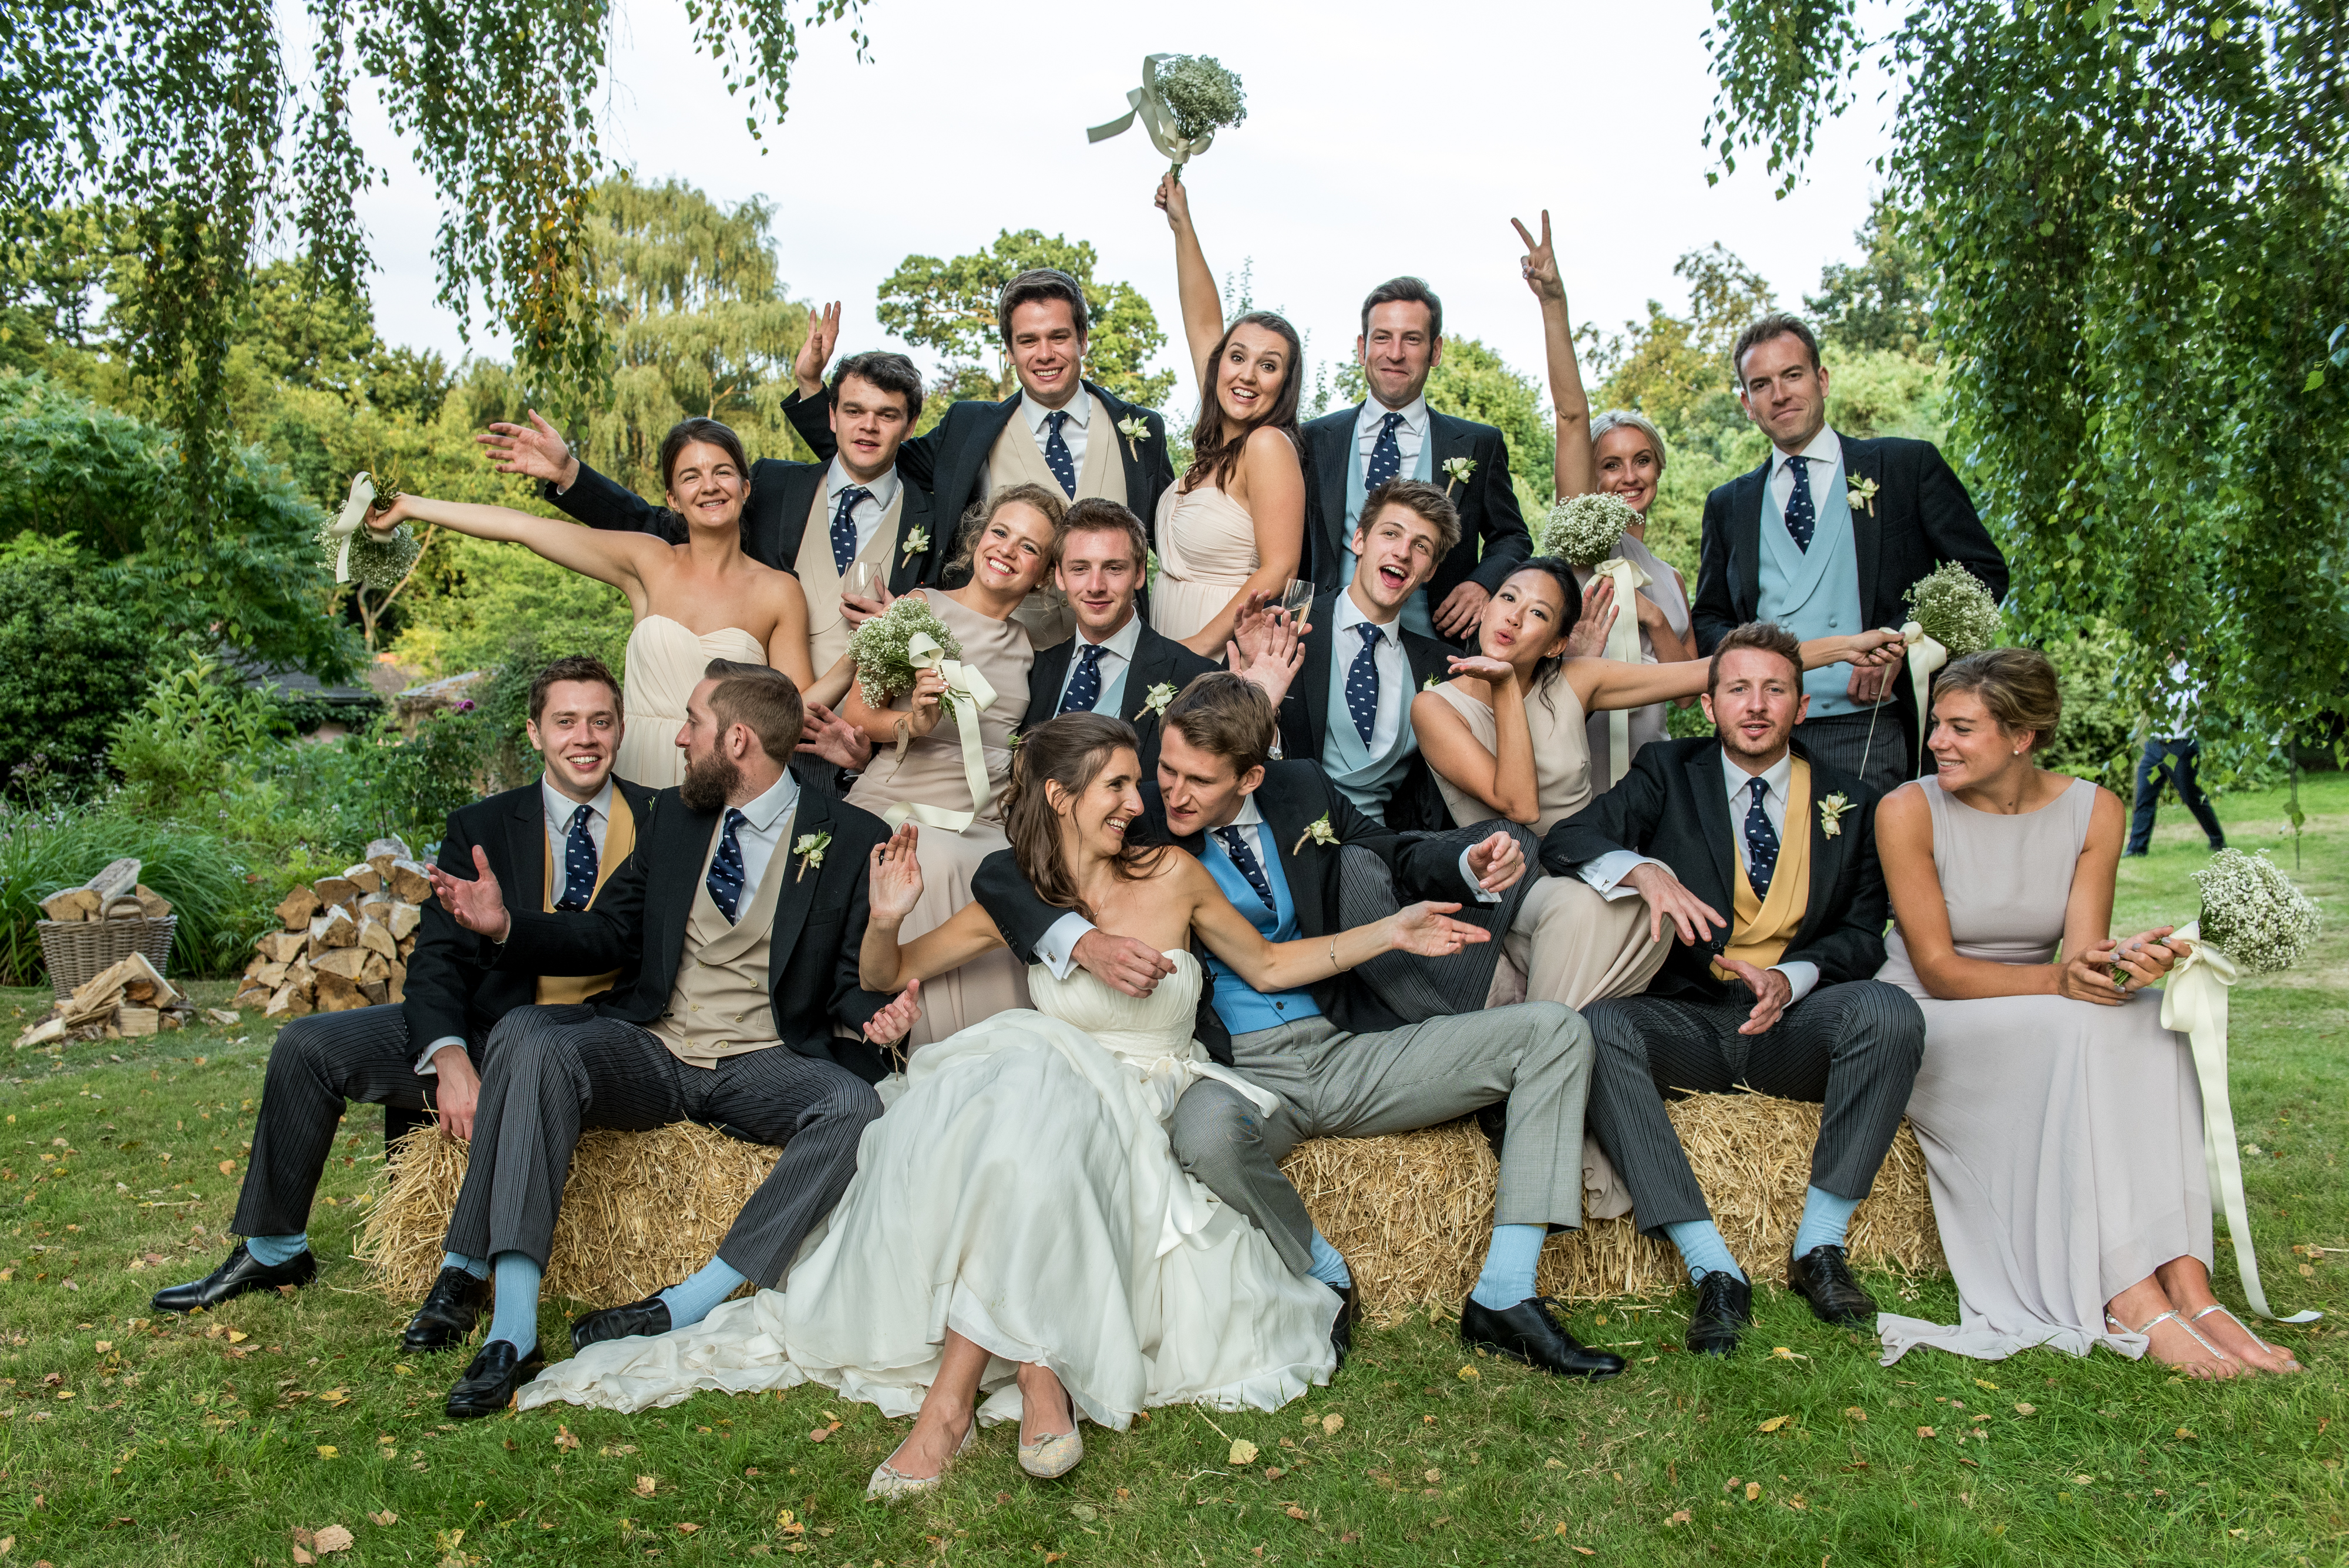 Jm-blog-garden-countryside-wedding-130